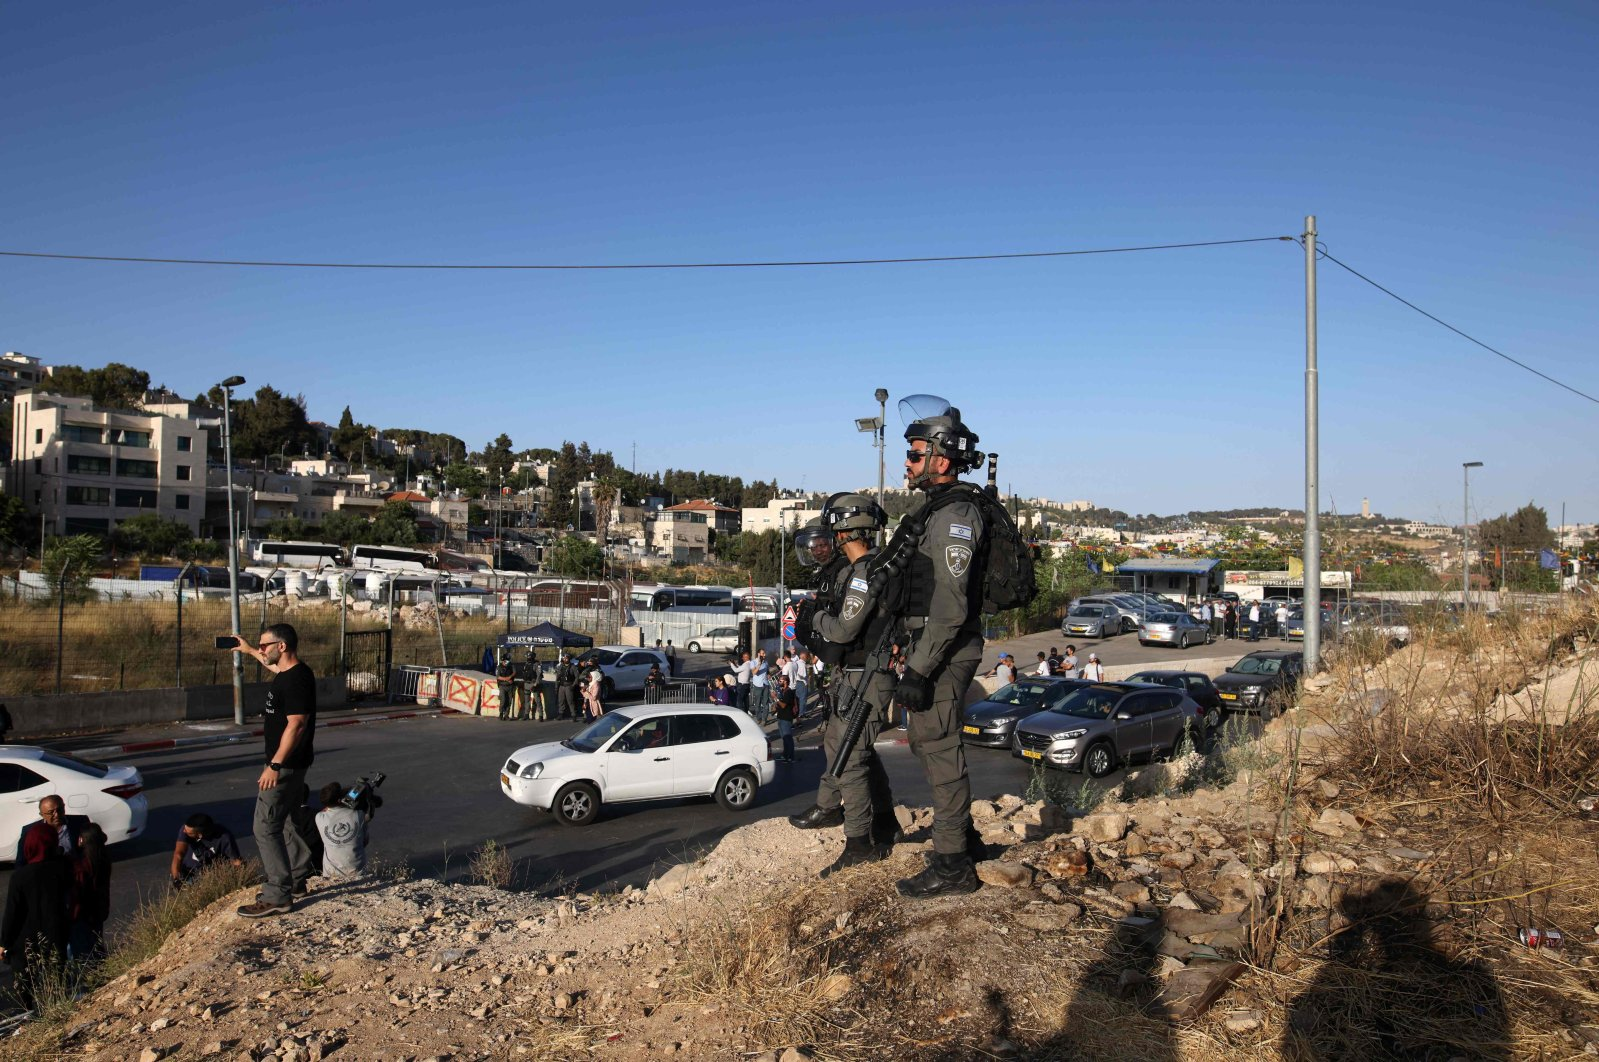 Israeli security forces watch as protesters near an Israeli police checkpoint at the entrance of the Sheikh Jarrah neighborhood in East Jerusalem rally to demand the reopening of the roadblock, Palestine, May 29, 2021. (AFP Photo)